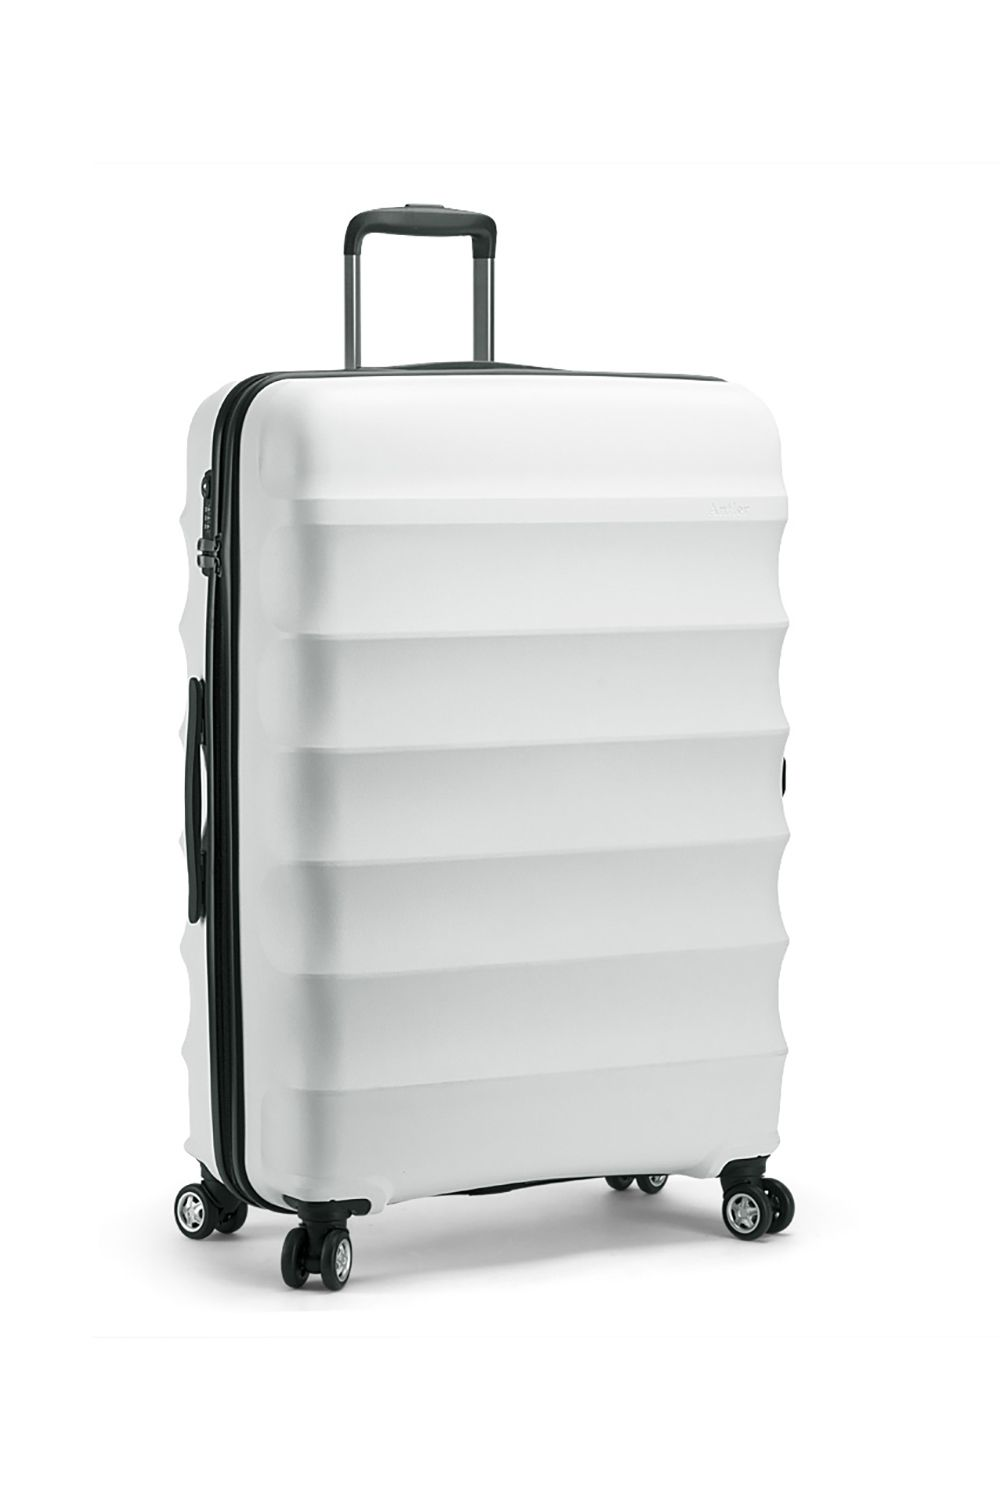 "<p>They've been in business for more than a century, so what more do you need to know? But just in case, their Juno model has a rep for being ultra light and roomy.&nbsp&#x3B;</p><p>$177, <a href=""http://www.luggagedirect.com.au/antler-juno-79cm-large-lightweight-4-wheel-suitcase-white.html"" target=""_blank"" data-tracking-id=""recirc-text-link"">luggagedirect.com</a>.</p>"